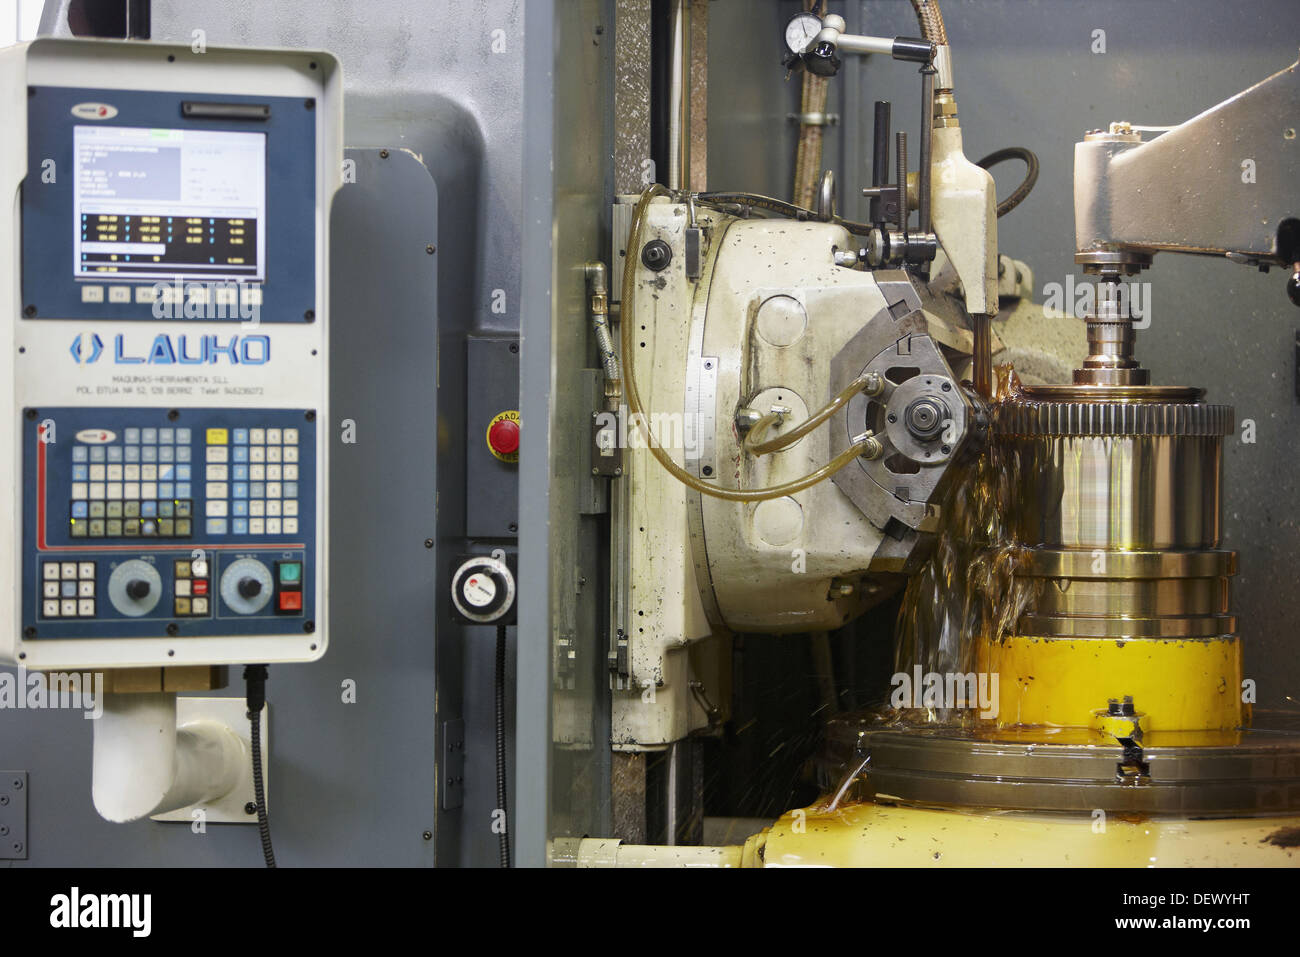 Transmission manufacturing, metallurgy, Guipuzcoa, Basque Country, Spain - Stock Image